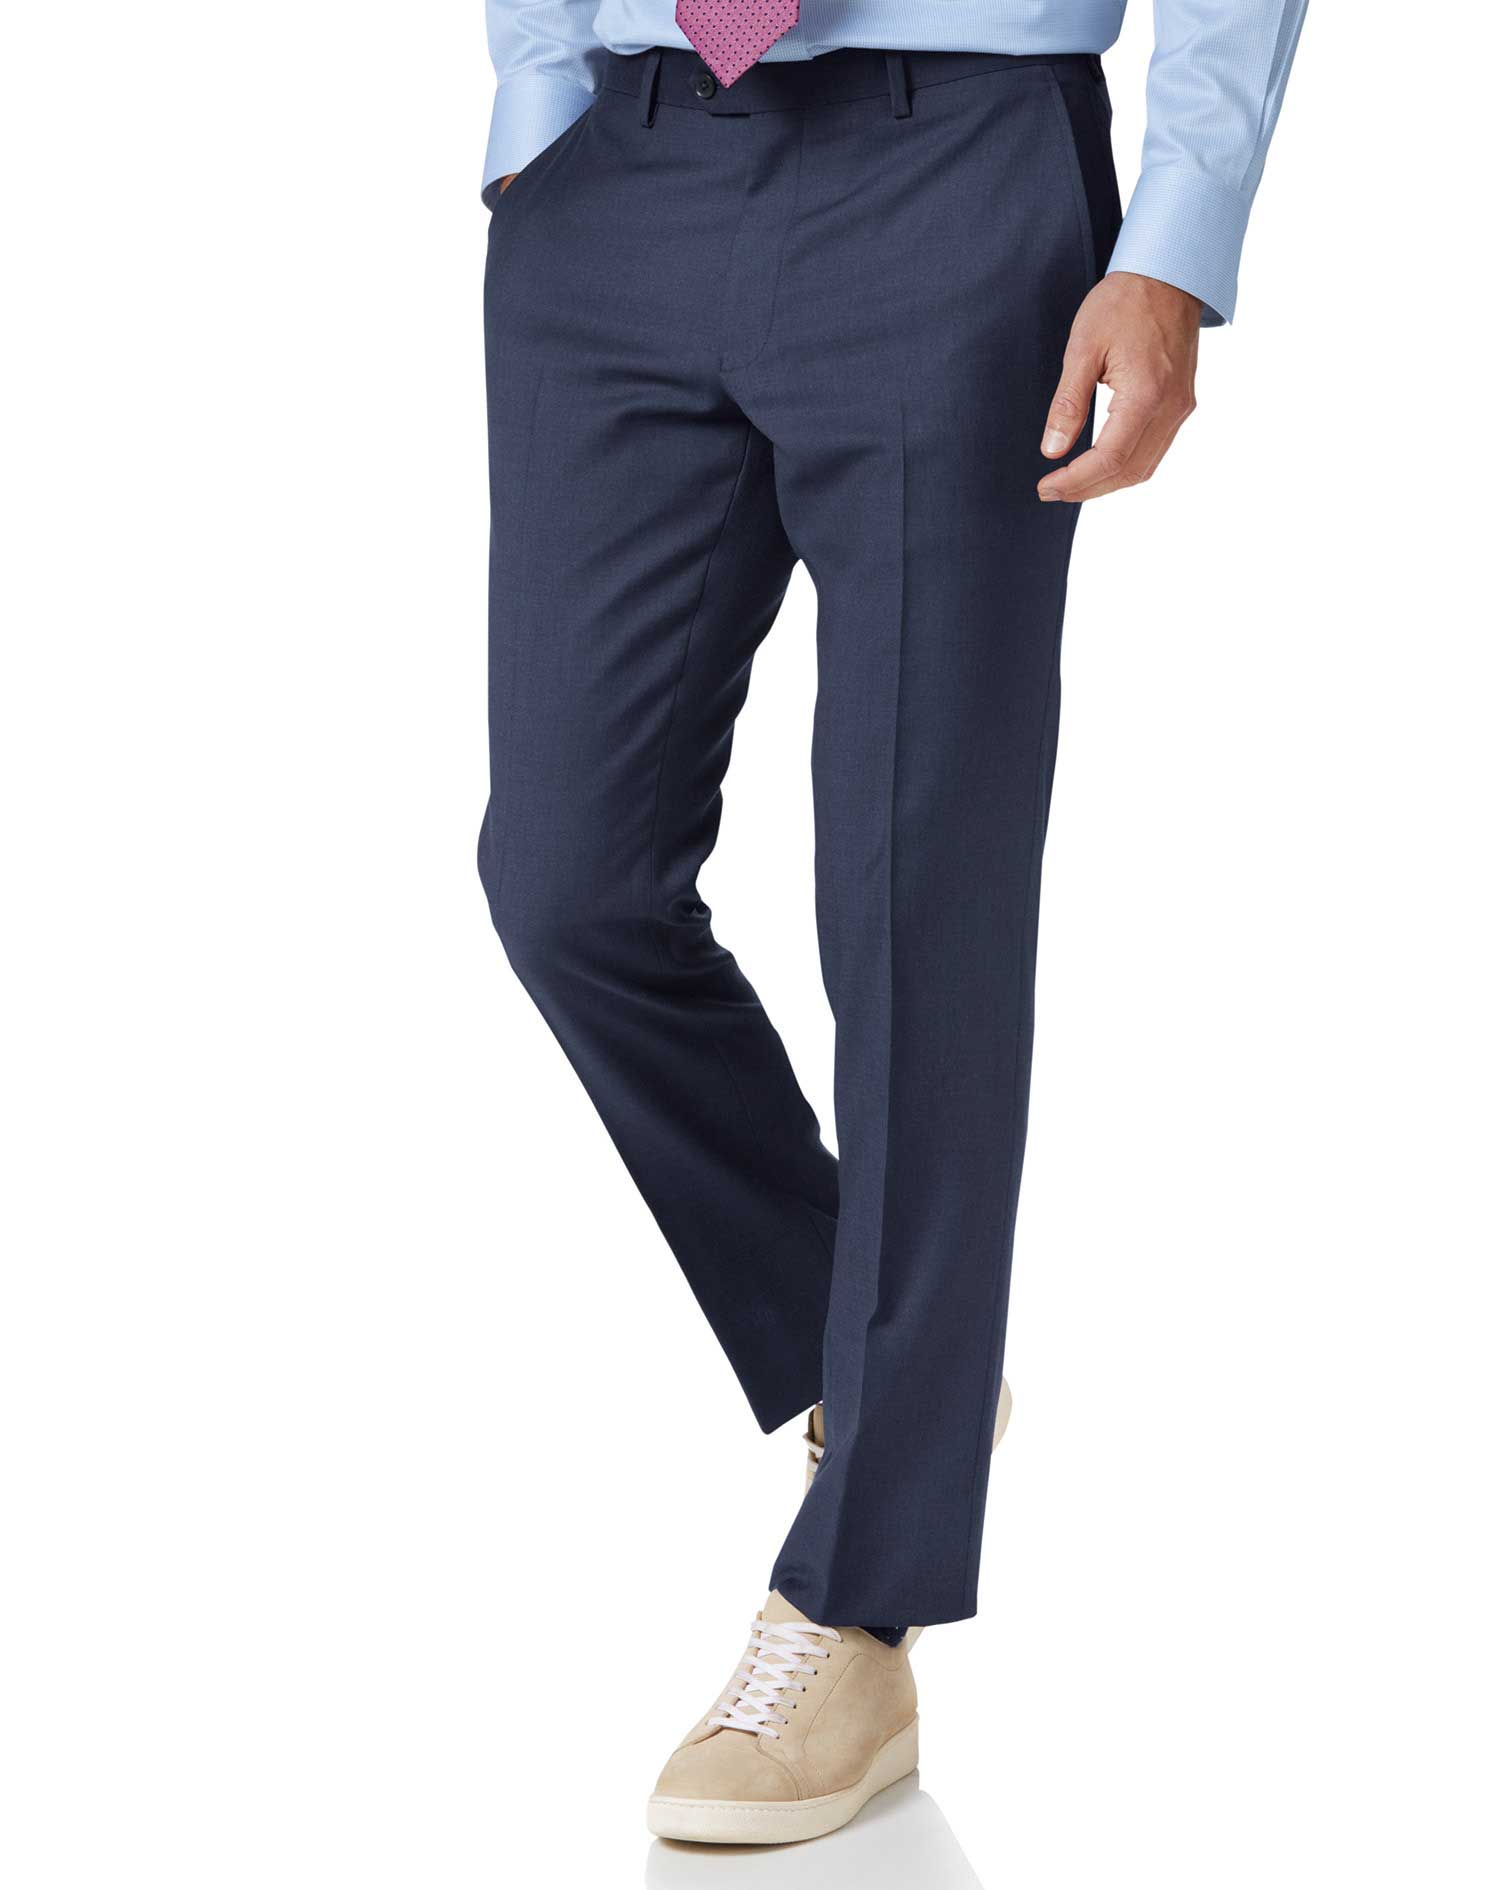 Mid Blue Slim Fit Twill Business Suit Trouser Size W38 L32 by Charles Tyrwhitt